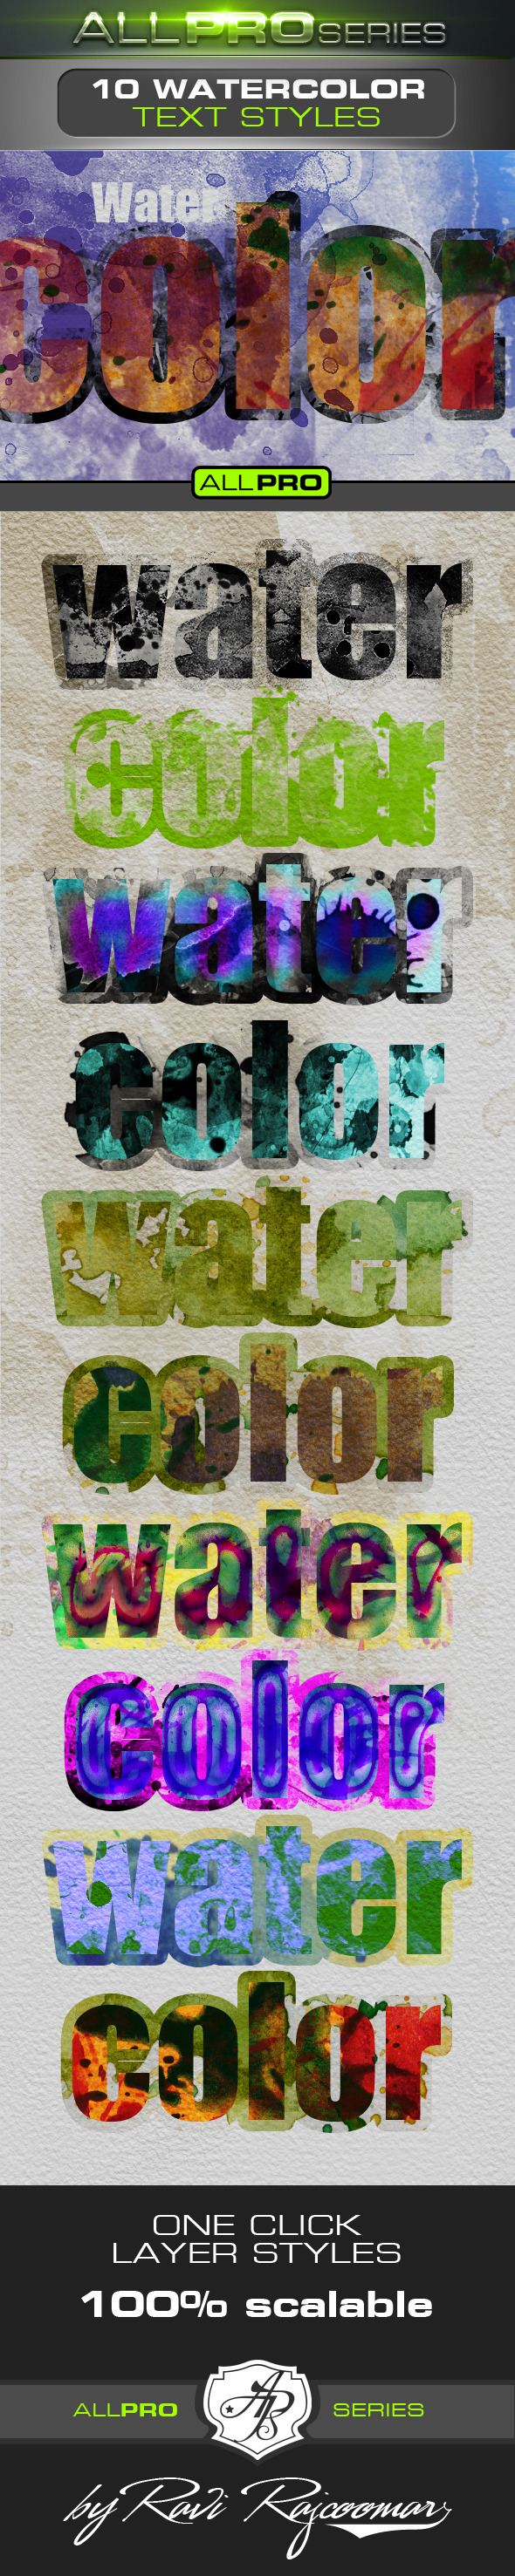 Watercolor Photoshop Text Styles - Text Effects Actions